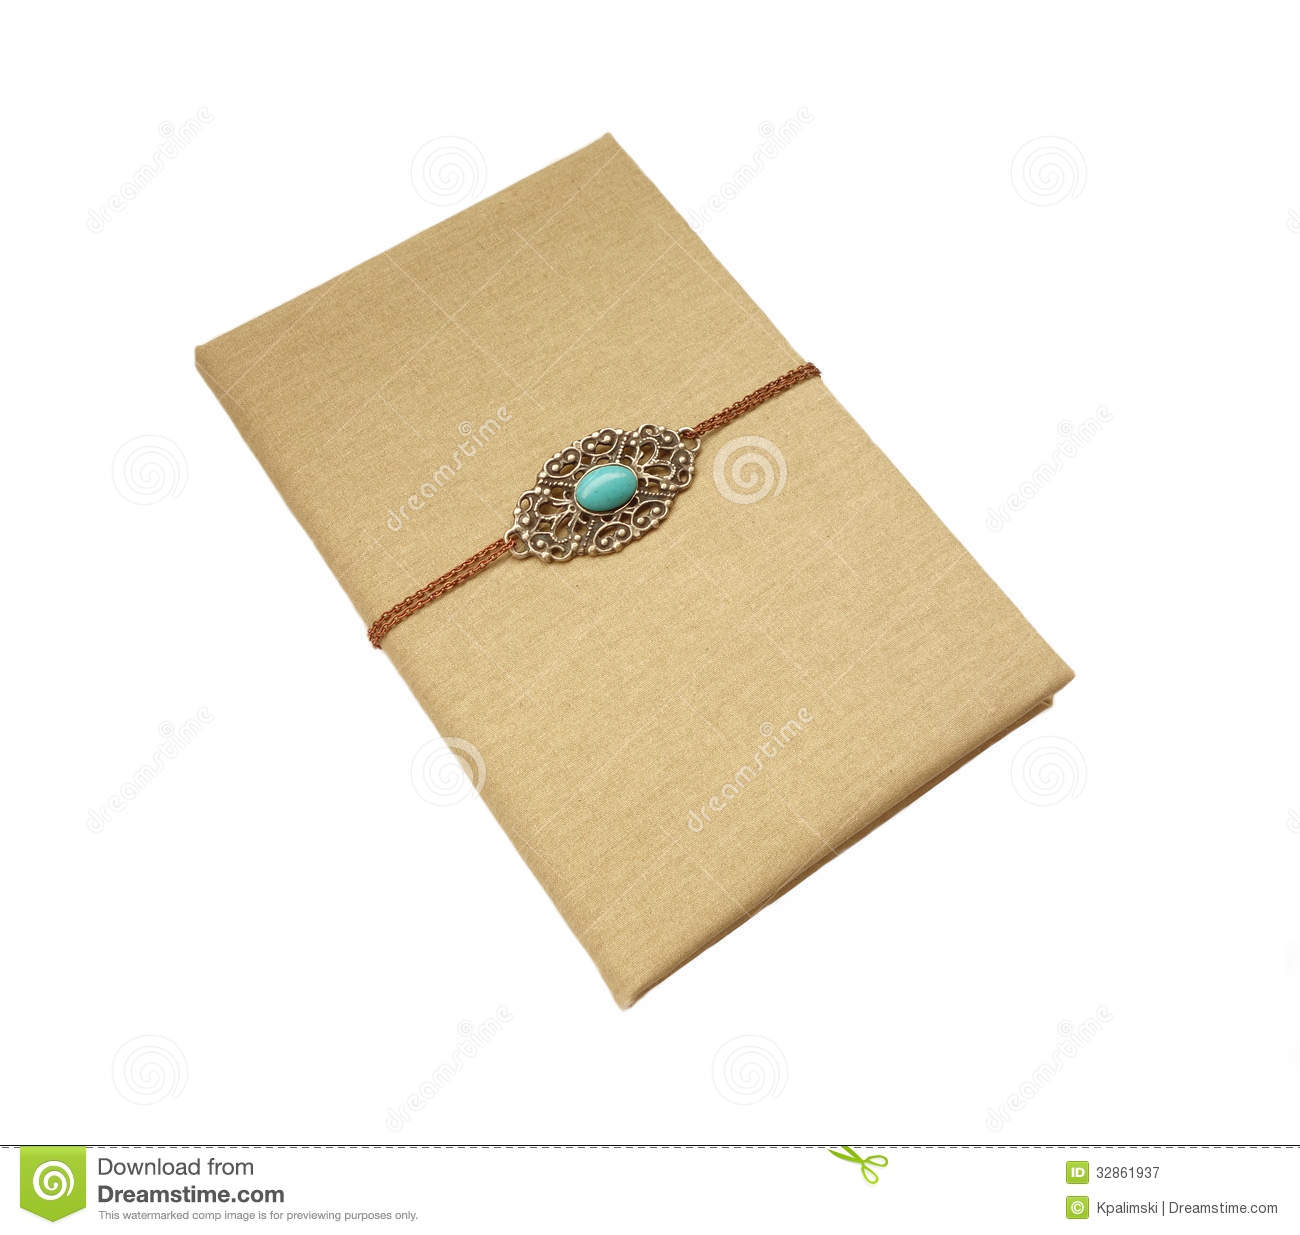 White Book Cover Design : Old book cover design royalty free stock photography